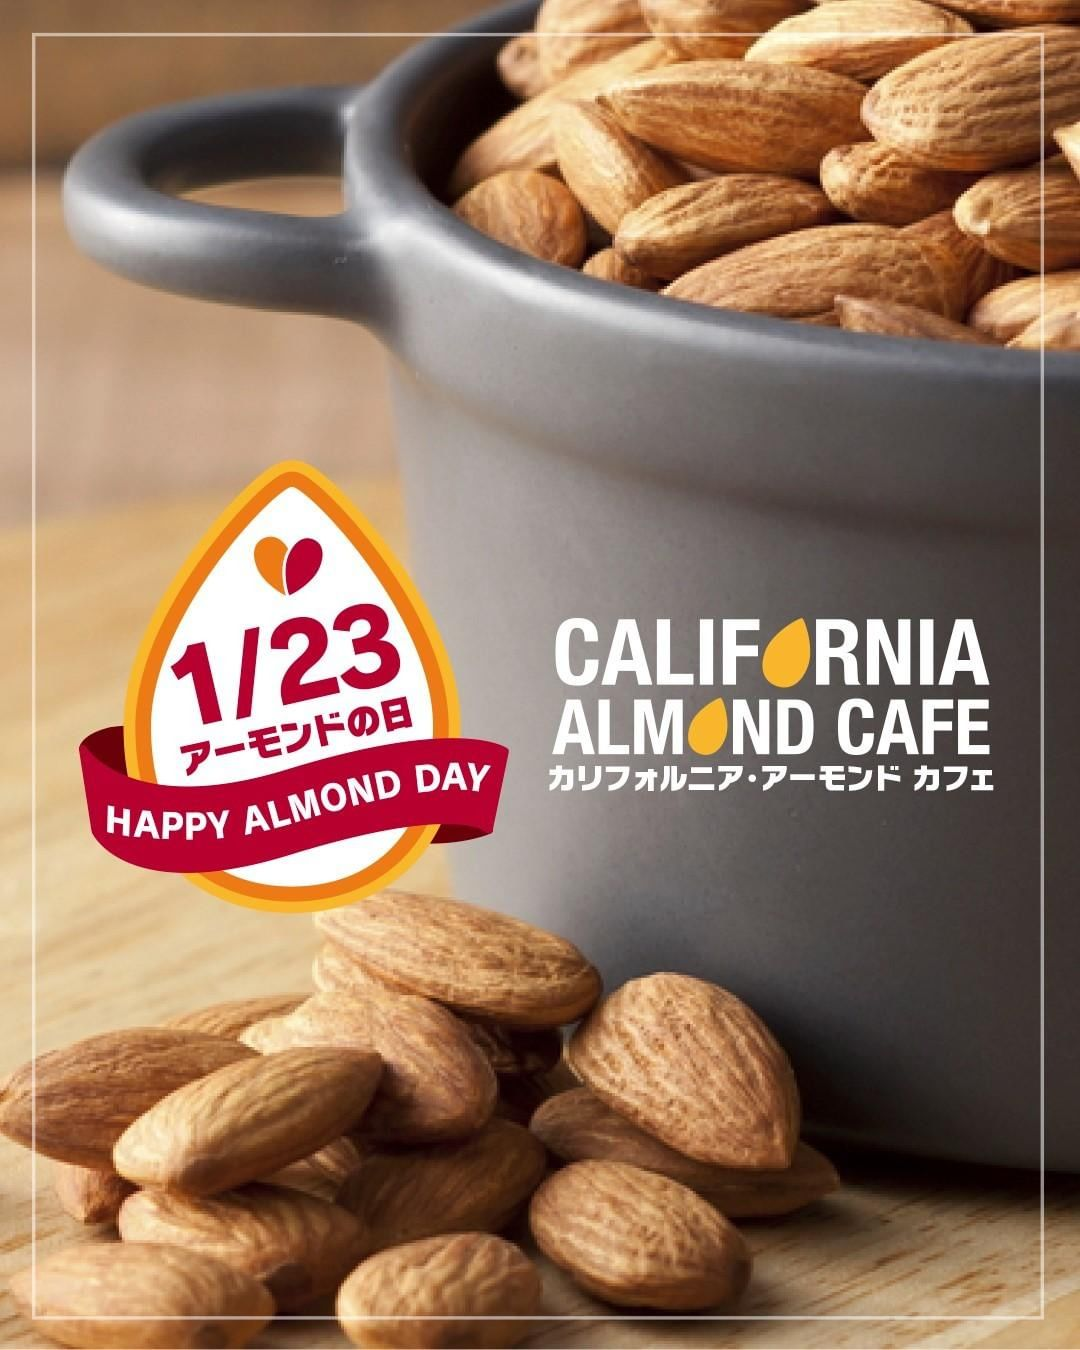 CA Almond Day\